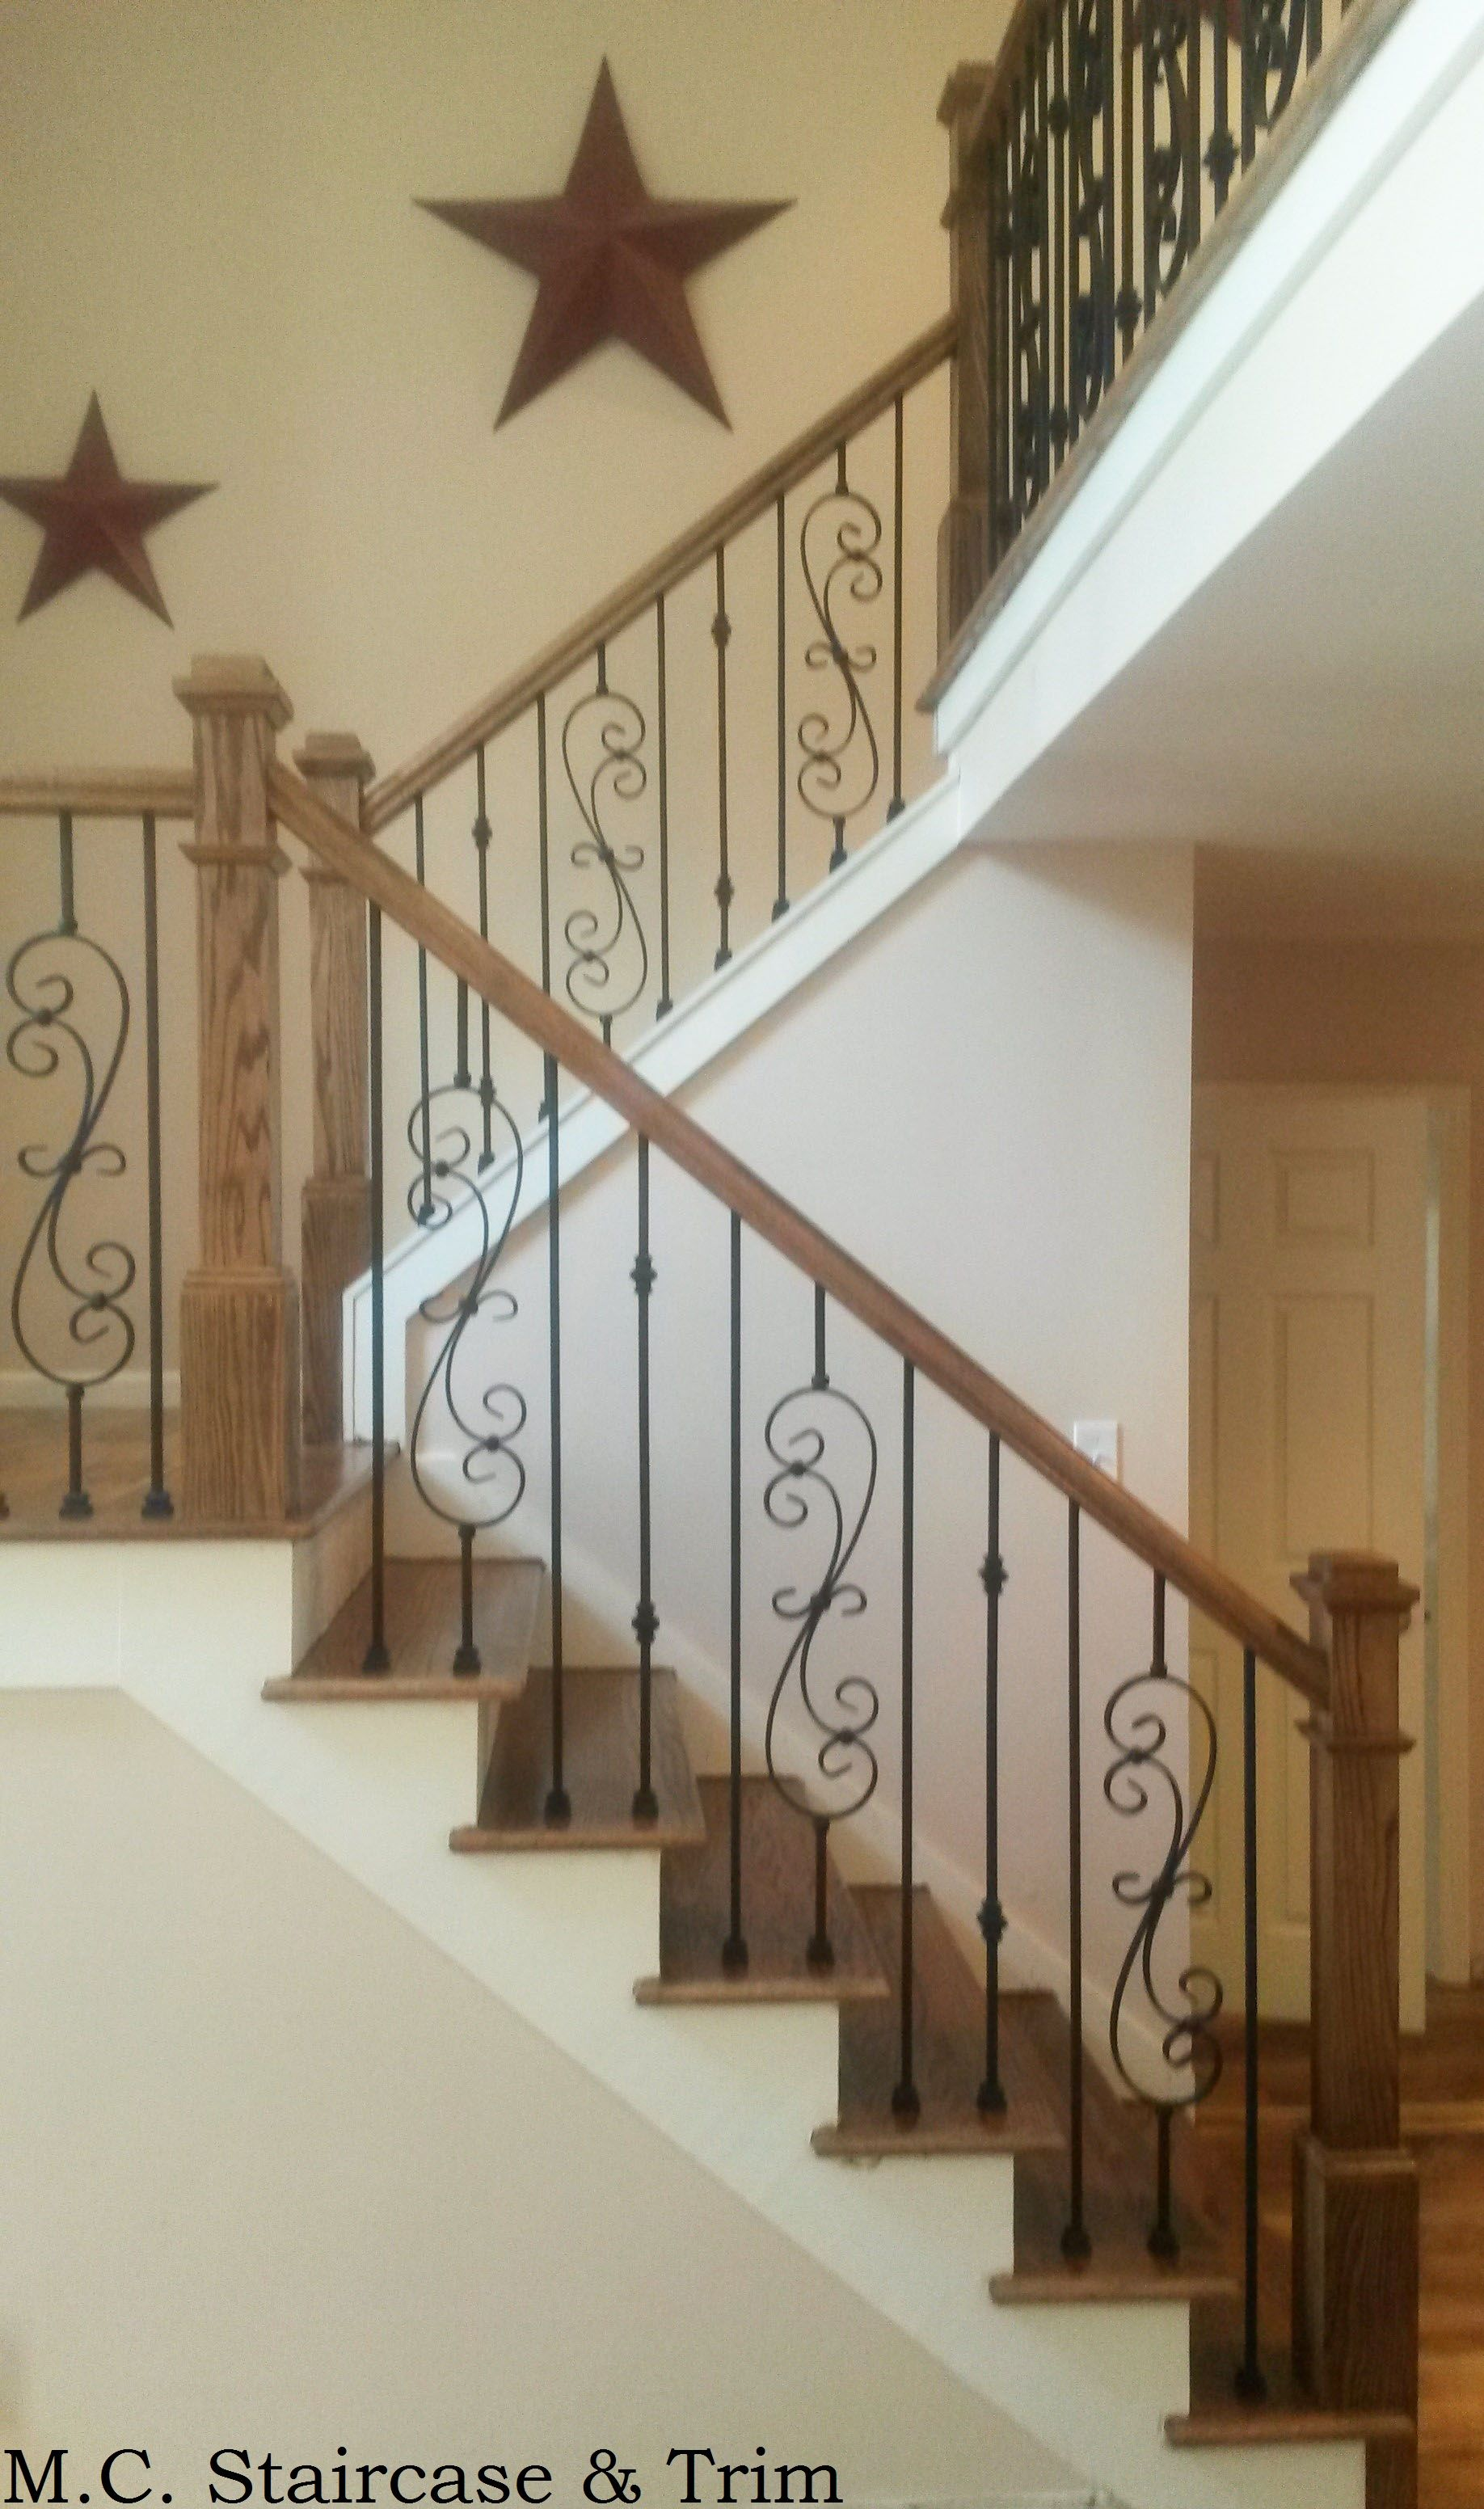 Iron baluster upgrade from M.C. Staircase & Trim. Removal of wooden  balusters and installation of